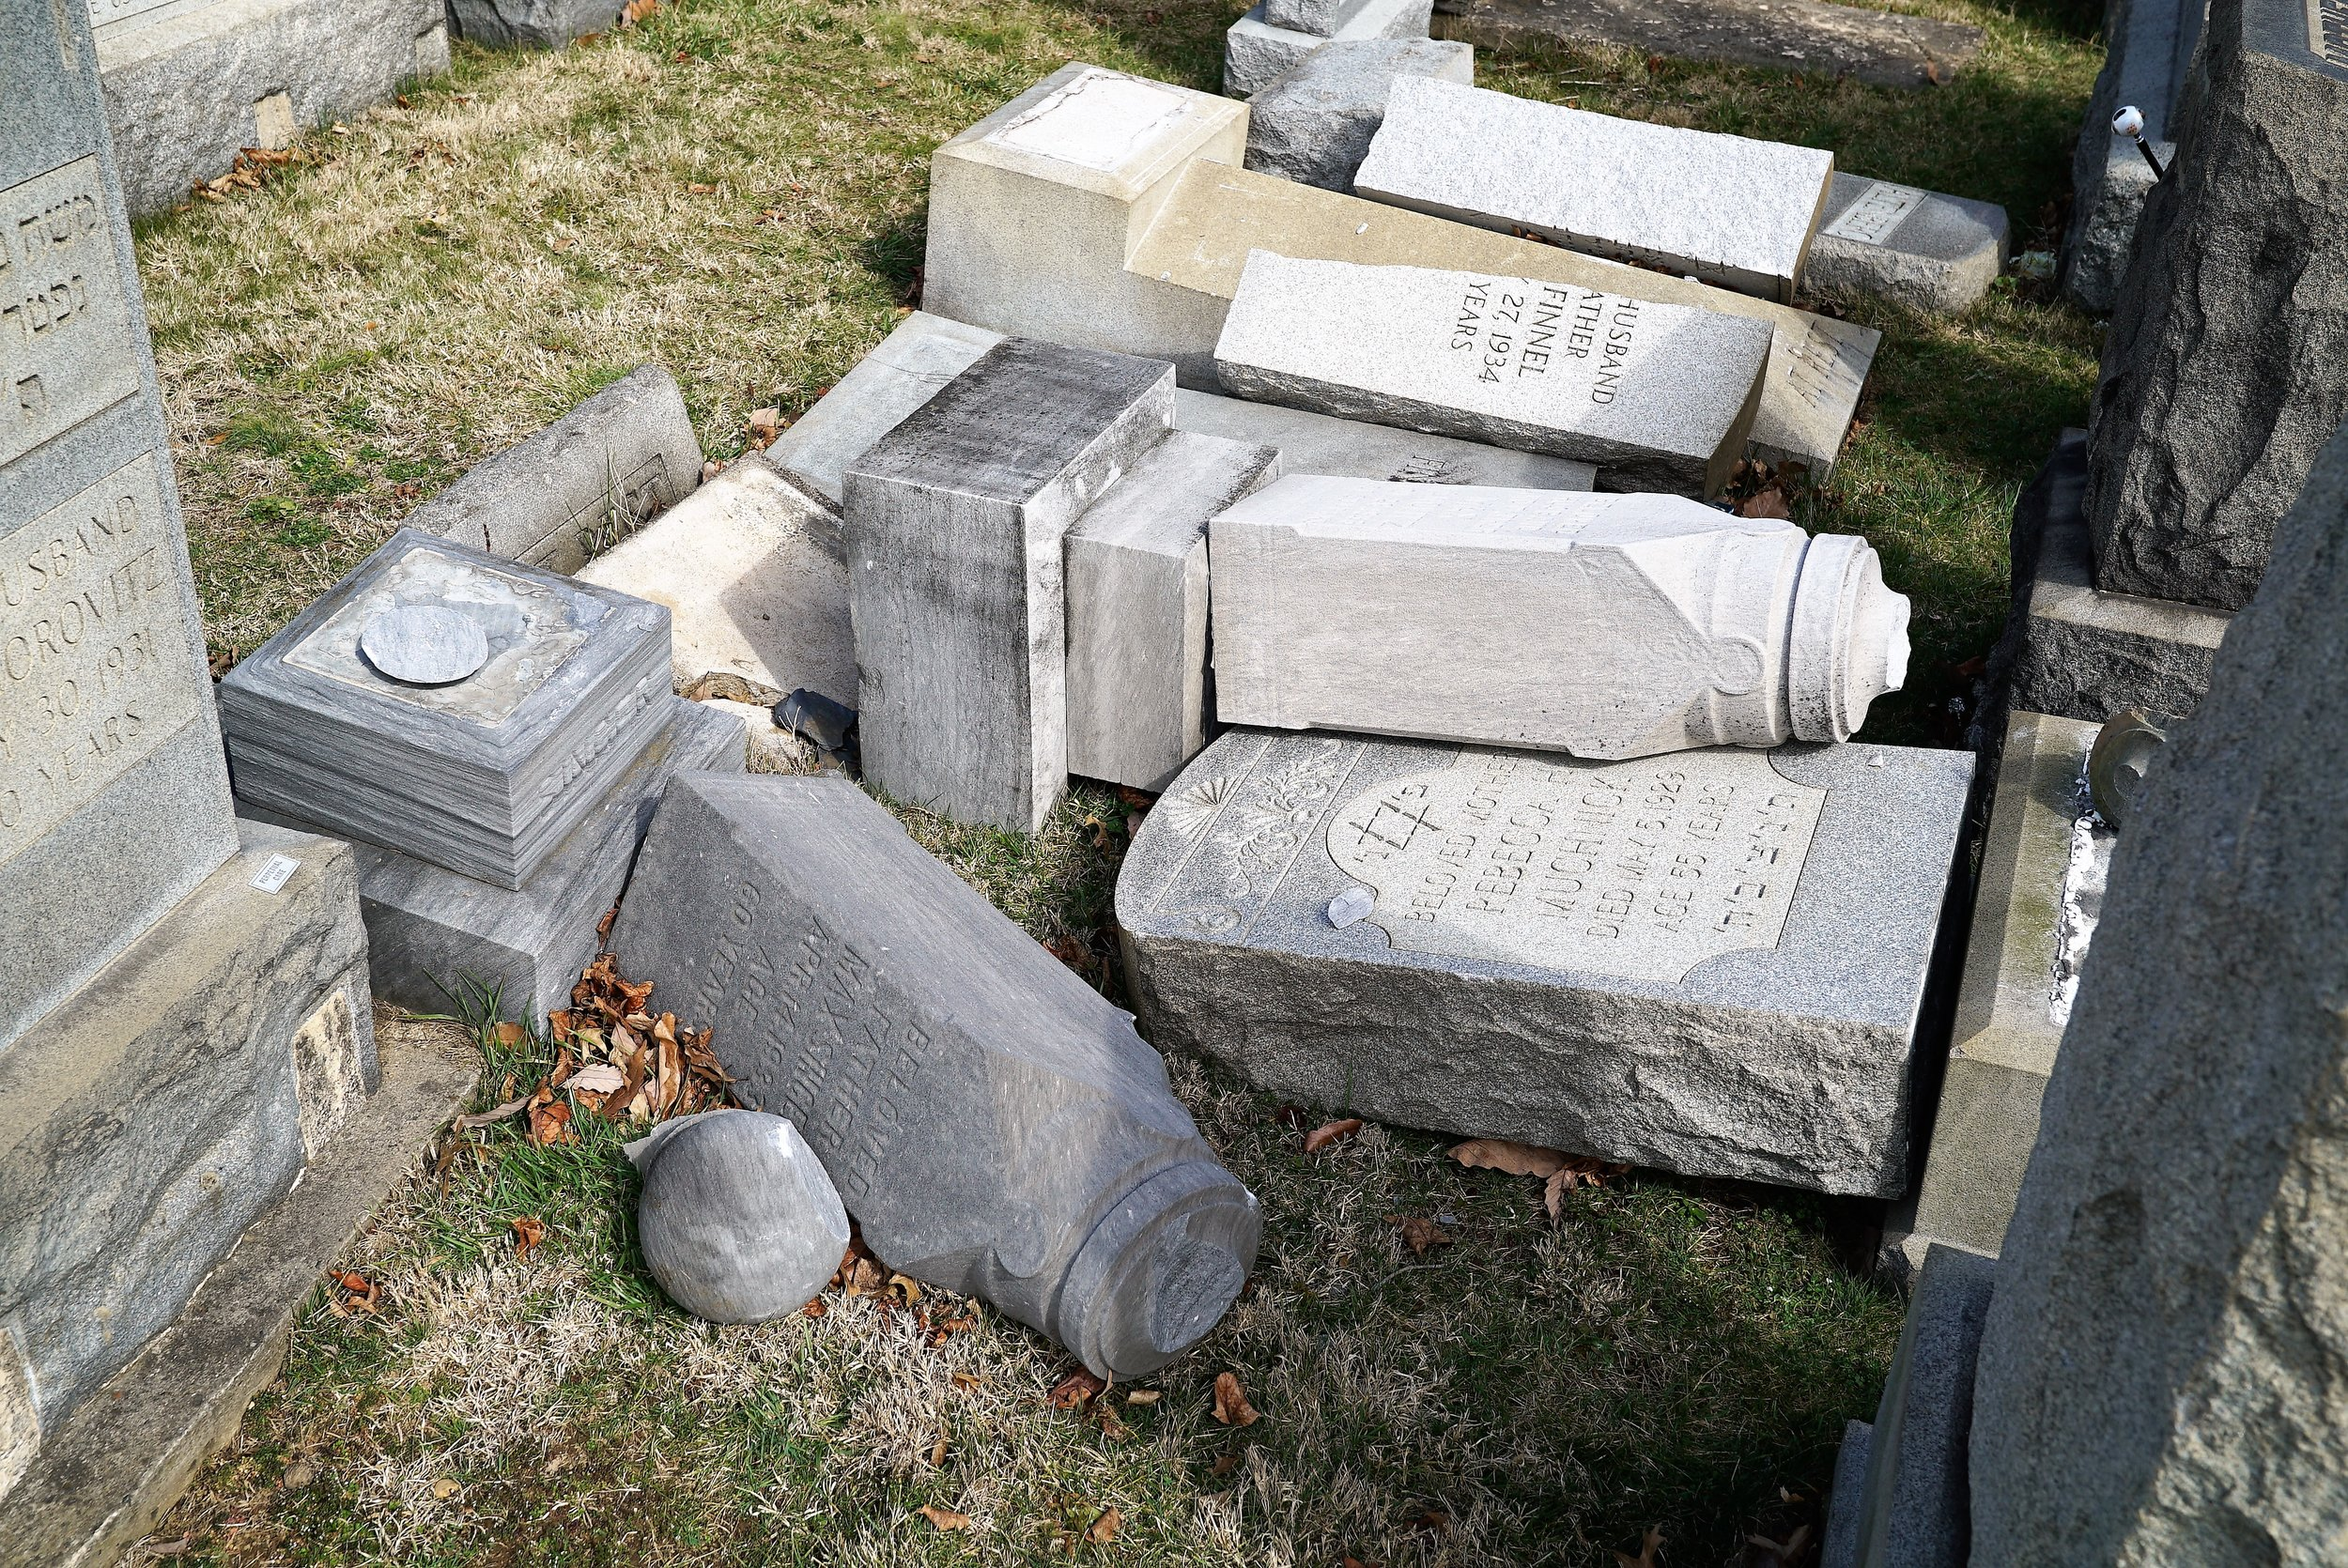 The scene at Mount Carmel Cemetery in Philadelphia, PA after vandals caused extensive damage to the cemetery.